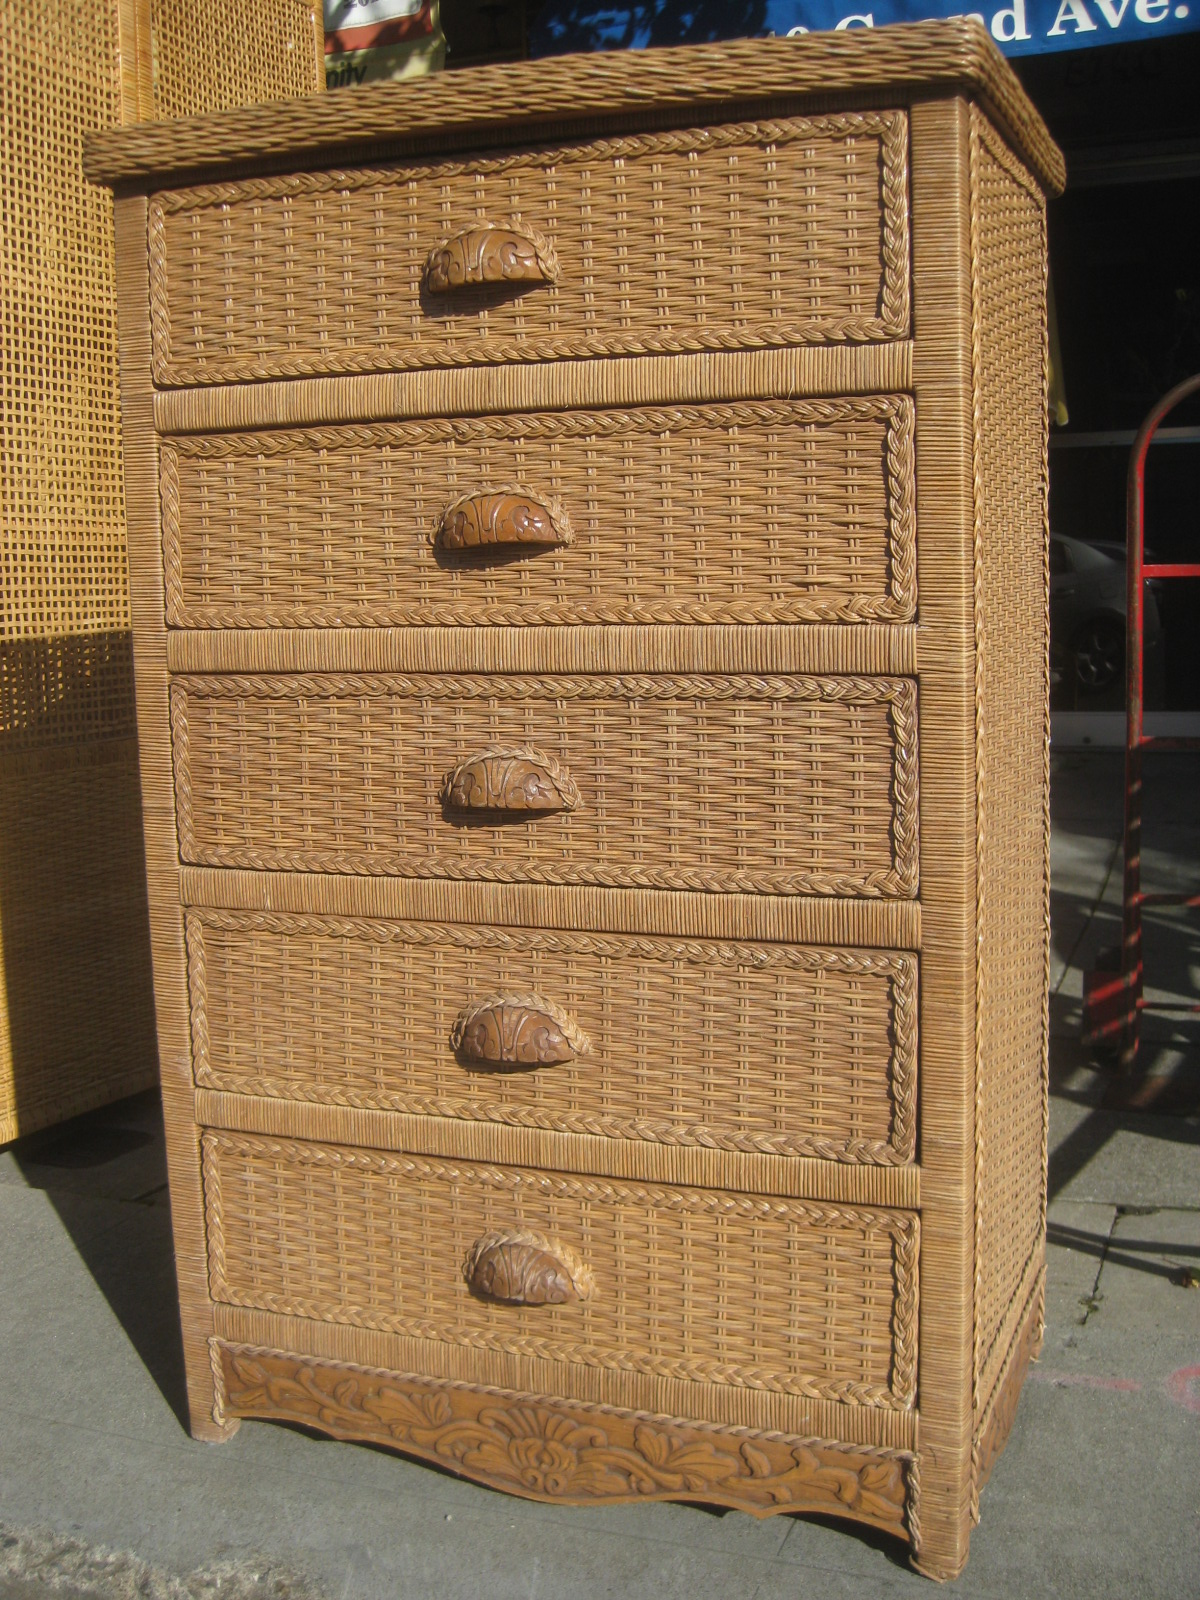 uhuru furniture collectibles sold chest of drawers with wicker sides 125. Black Bedroom Furniture Sets. Home Design Ideas